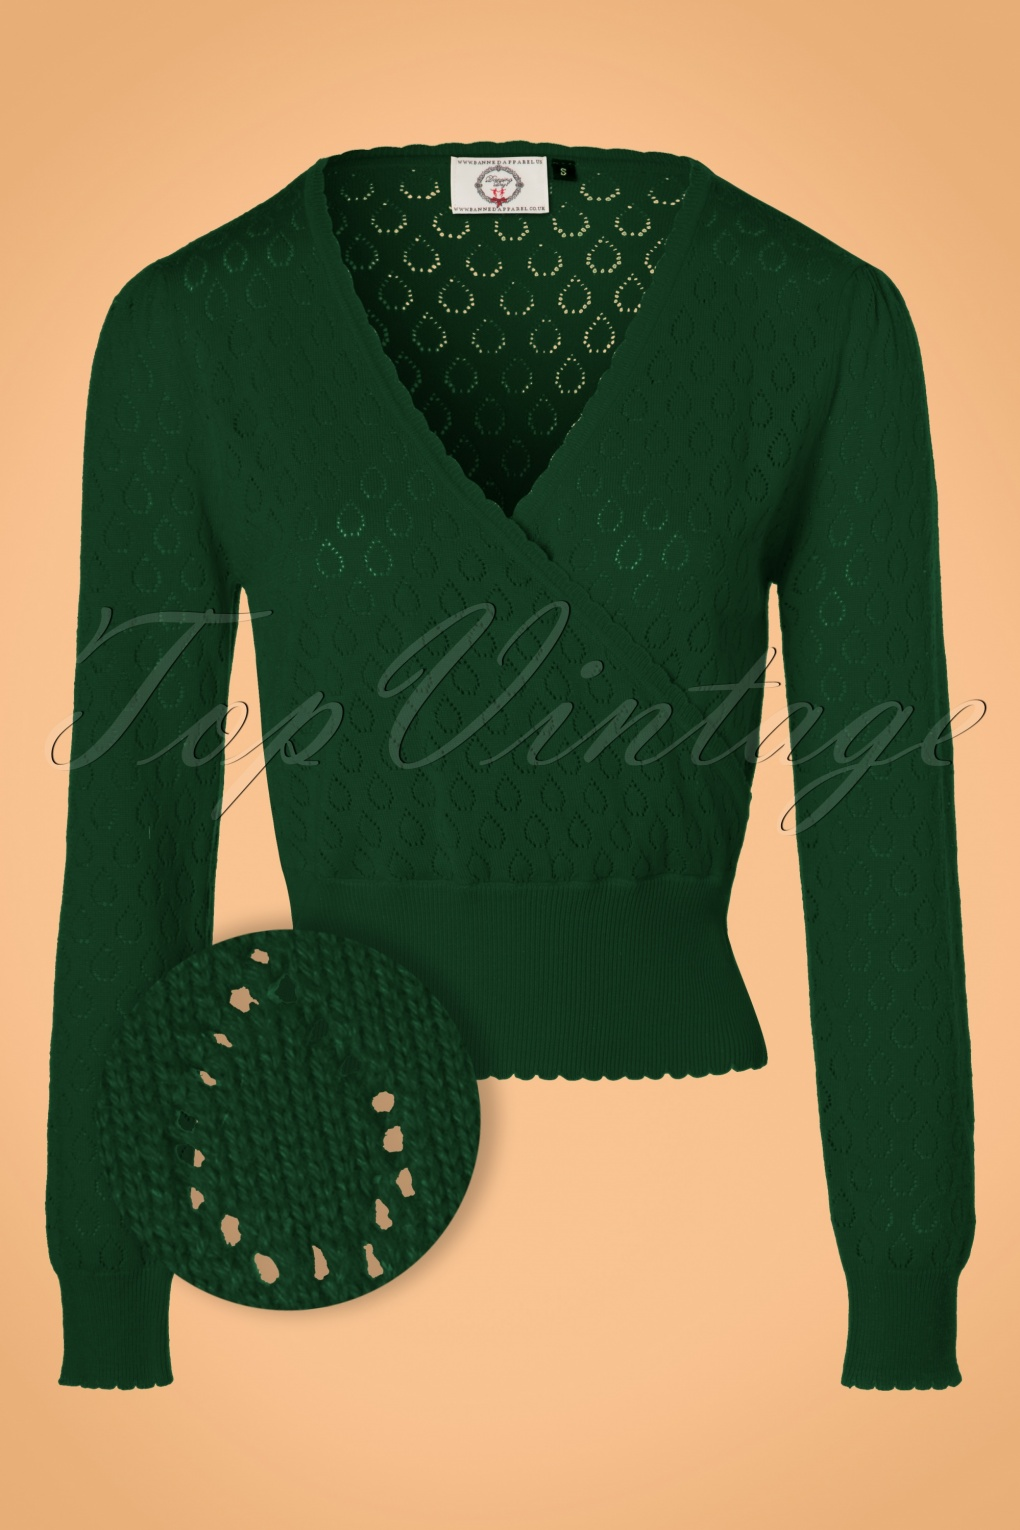 1950s Sweaters, 50s Cardigans, Twin Sweater Sets 50s Instinct Wrap Top in Forest Green £33.04 AT vintagedancer.com